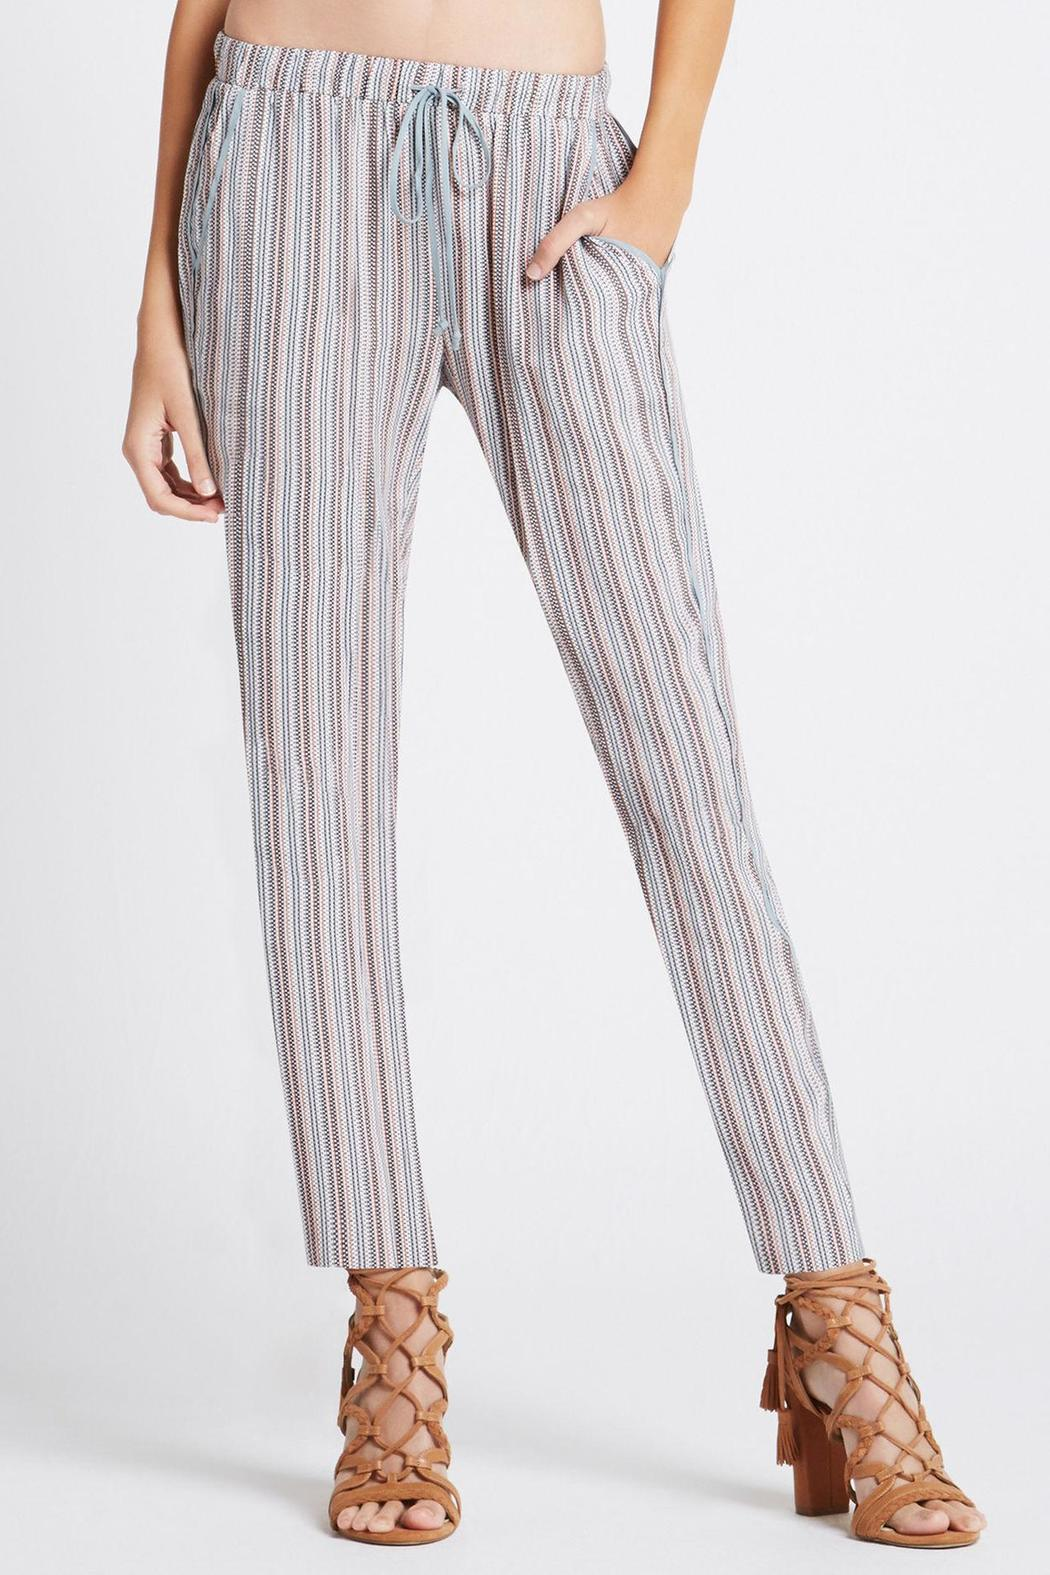 BCBGeneration Drawstring Pants - Main Image